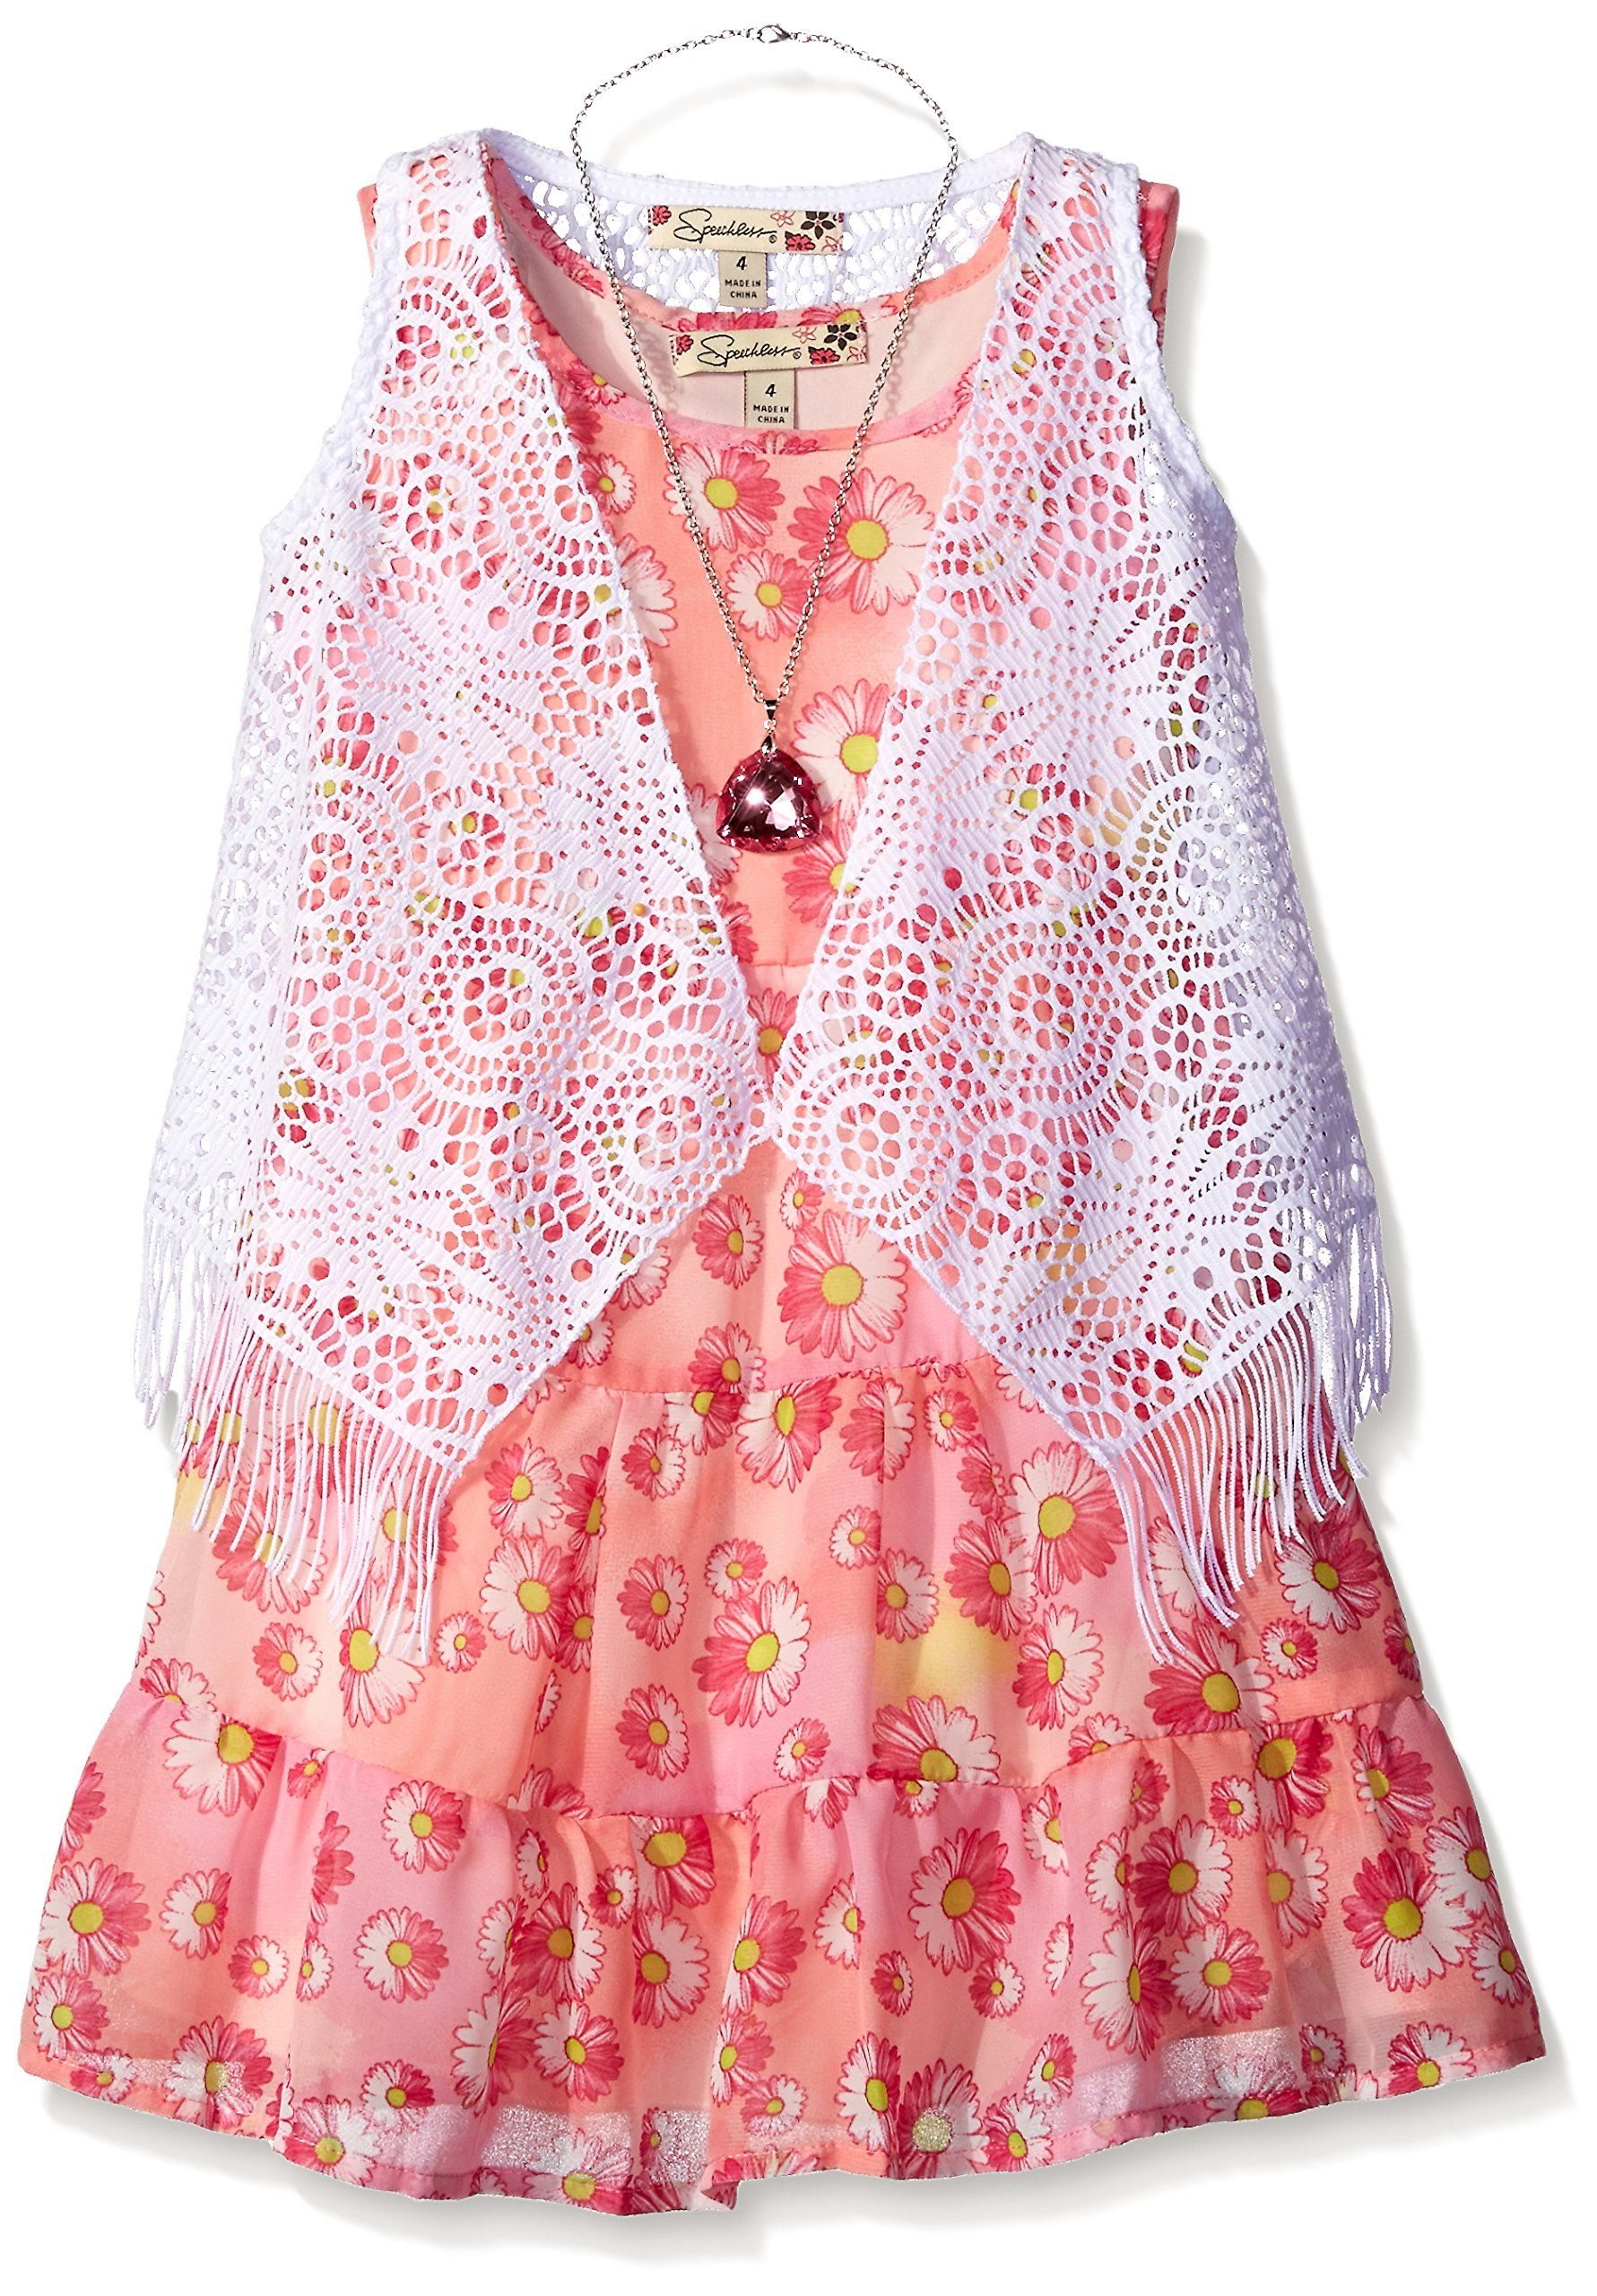 AMERICAN PRINCESS Girls Sequin Soutache Ruffle Cascade Dress Watermelon 2T 3T 4T